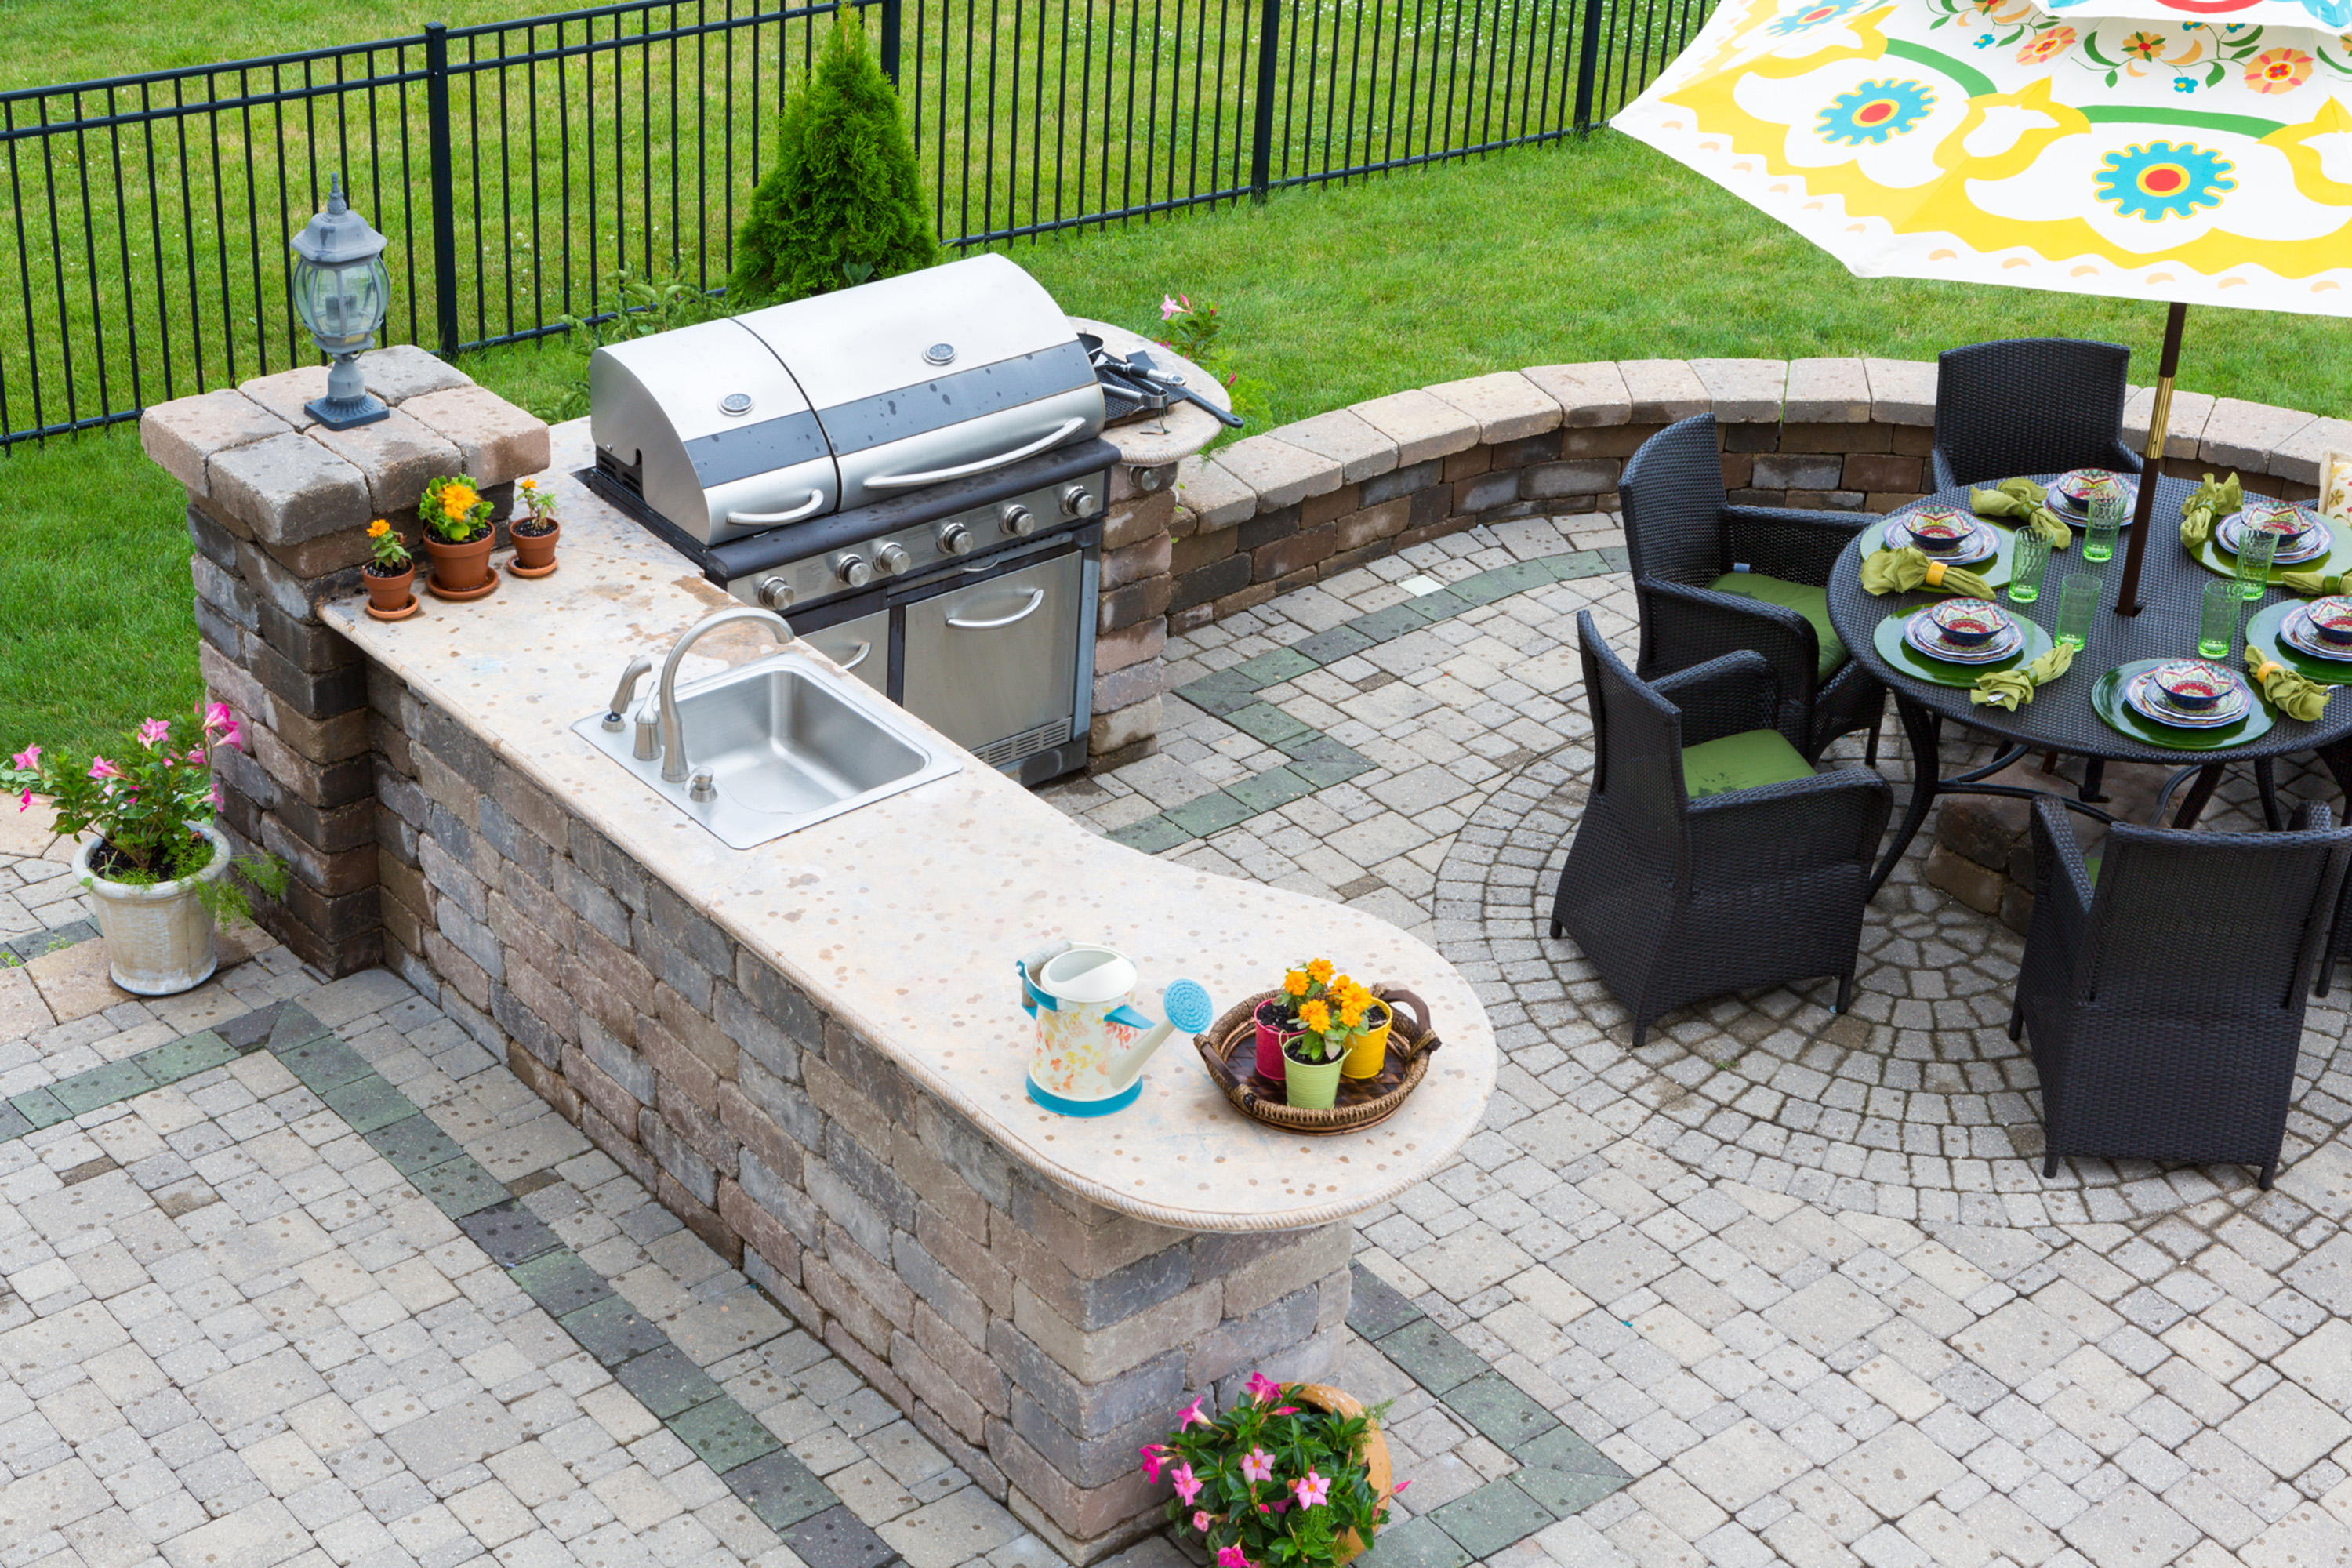 outdoor kitchen cart how to plan the perfect grills sinks refrigerators and stone countertops are popular features dreamstime